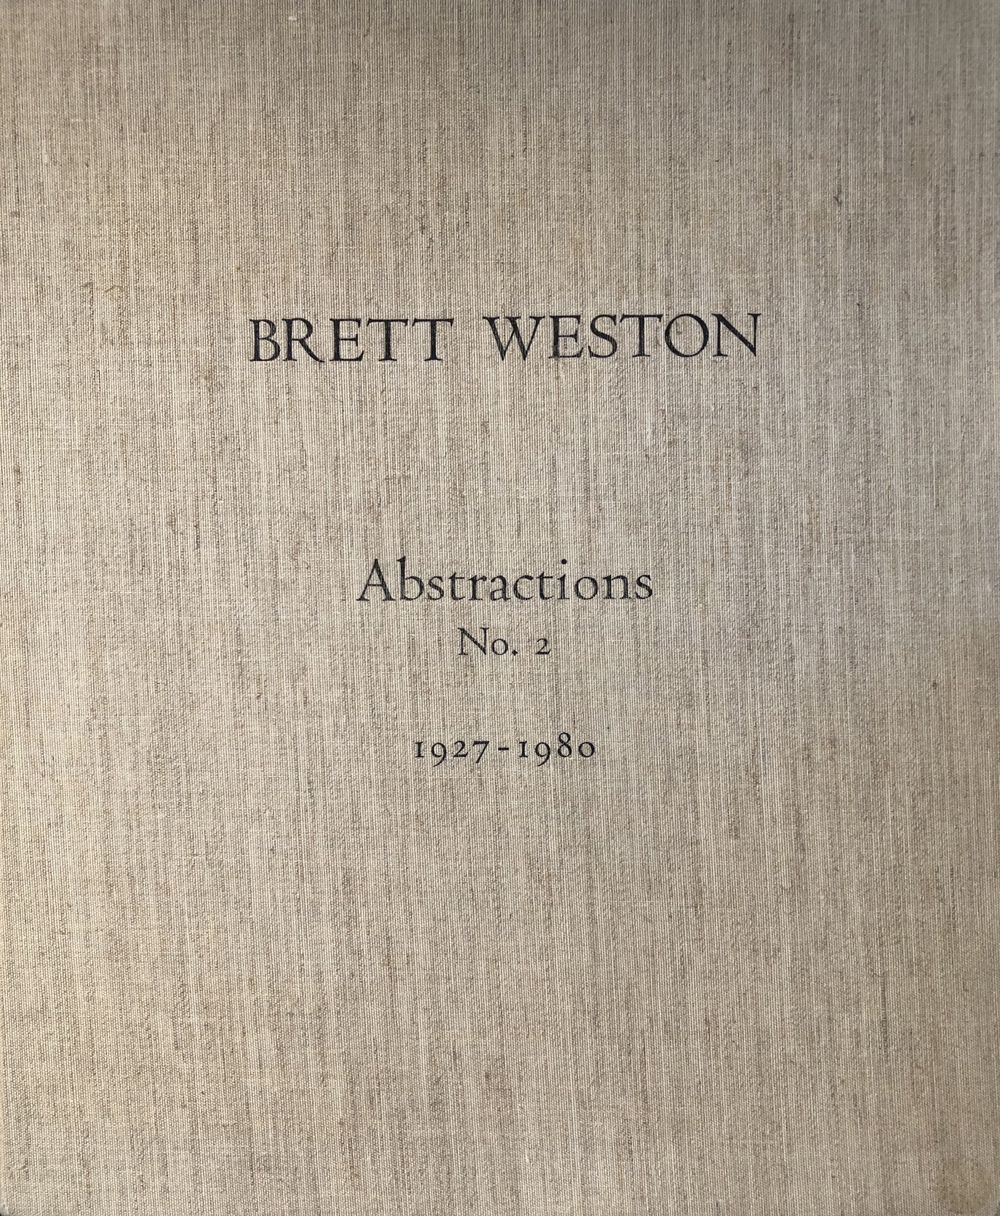 Brett Weston, Abstractions No. 2 portfolio, 1927-1980, 20 gelatin silver prints, signed by artist, price on request